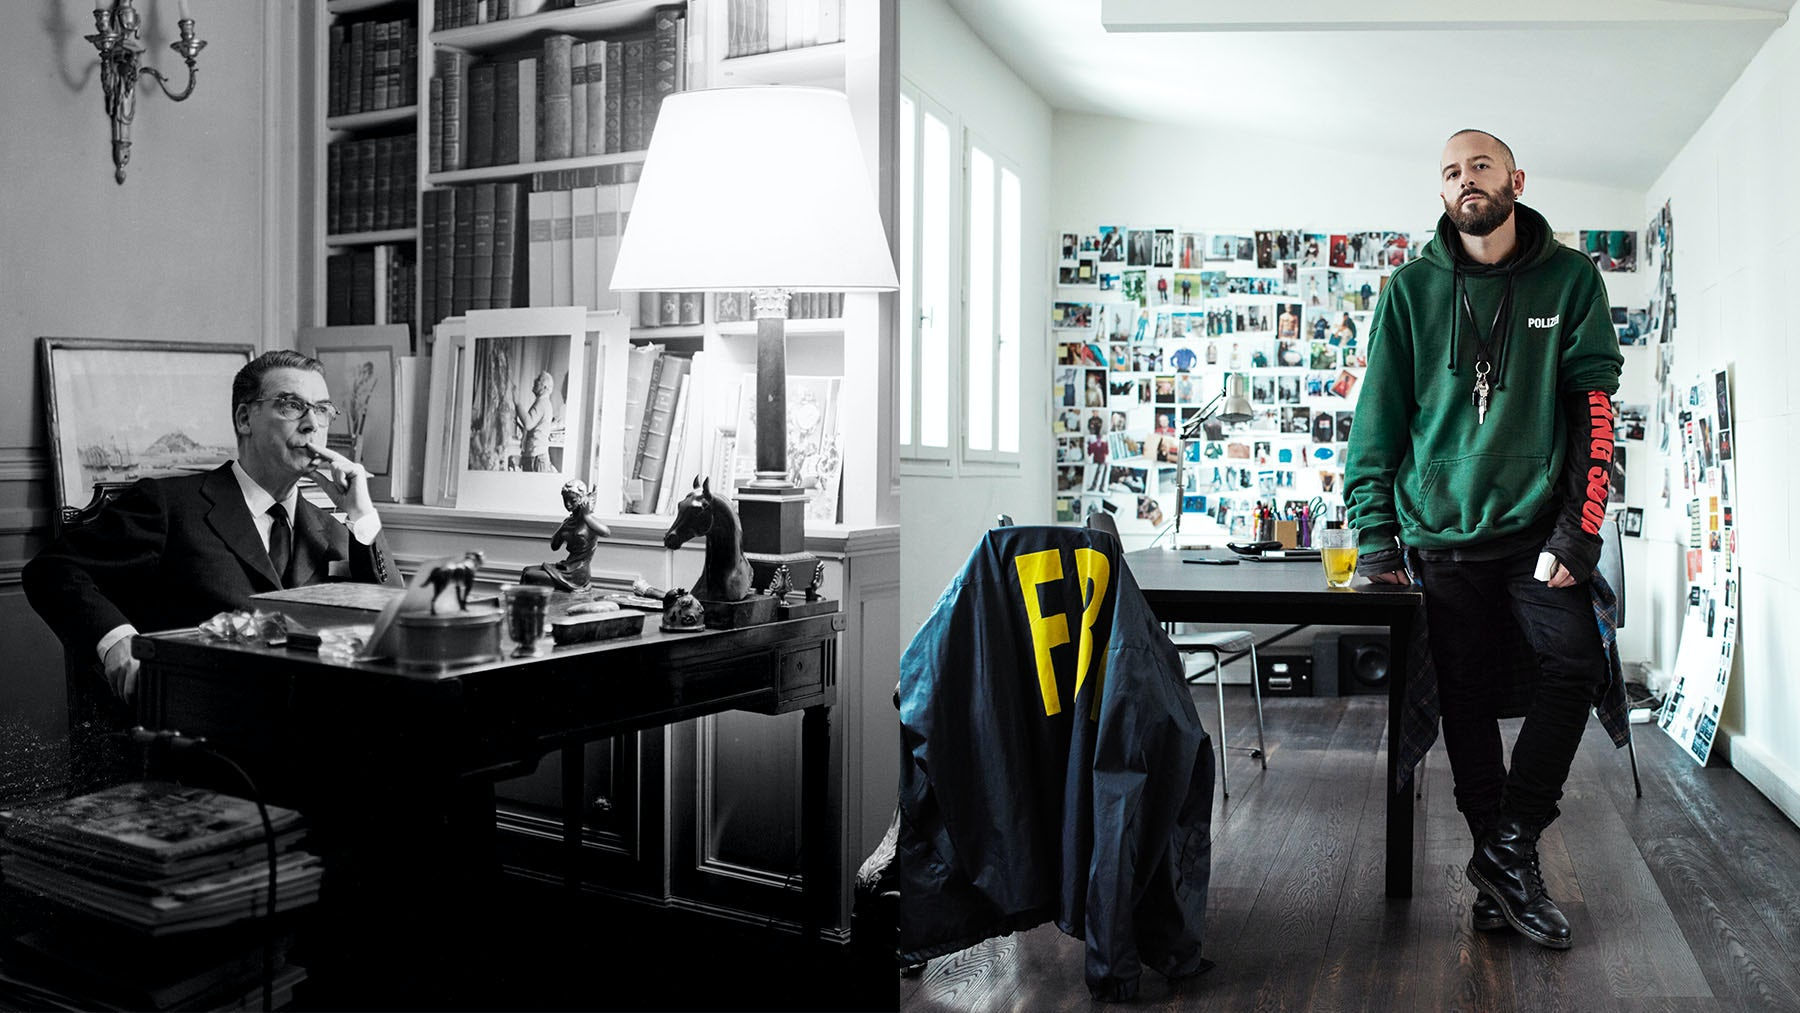 Left: Cristóbal Balenciaga in his studio at Avenue Marceau in Paris, photographed by Cecil Beaton in the late 1950s. Right: Willy Vanderperre for BoF in 2016. | Source: Courtesy